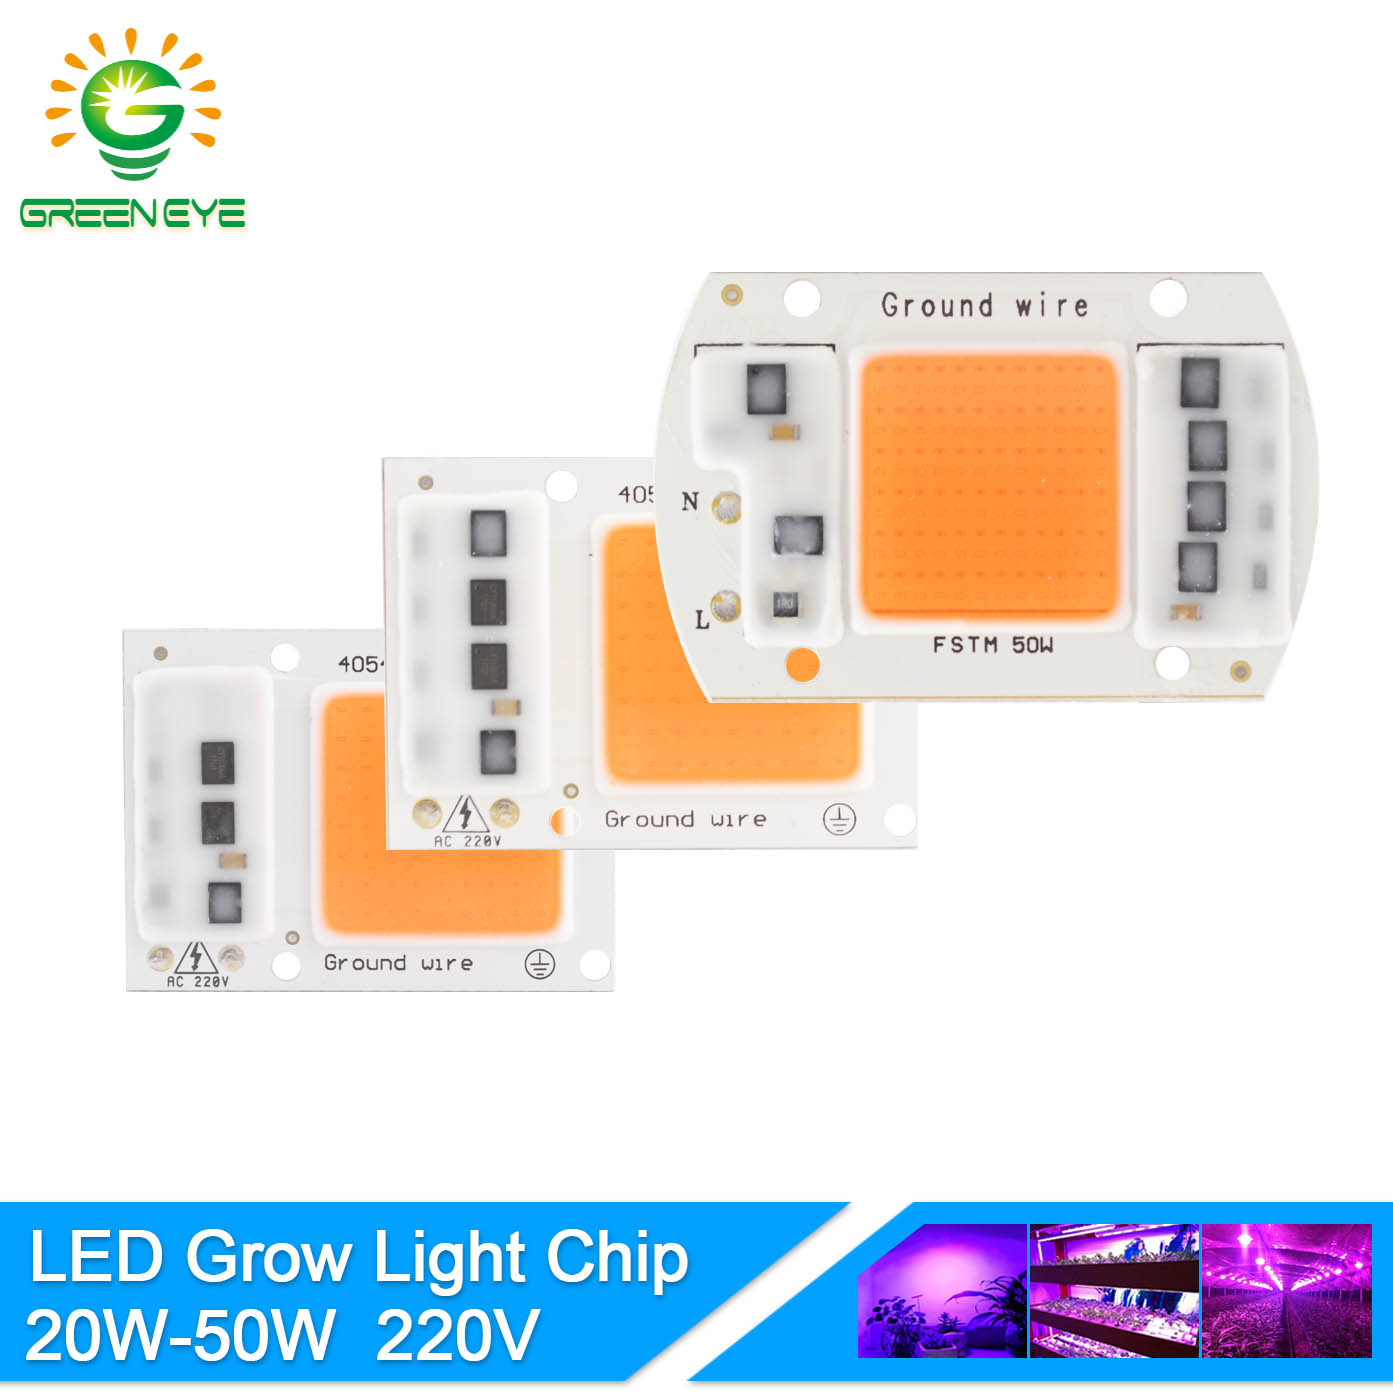 GreenEye LED Grow Light Lamp Chip Full Spectrum UV IR 220V 20W 30W 50W For Flower Plant Hydroponic Seedling Greenhouse Vegetable 30 led full spectrum ufo led grow panel light uv ir growing lamp 300w home indoor greenhouse veg flower plant seeding hydroponic